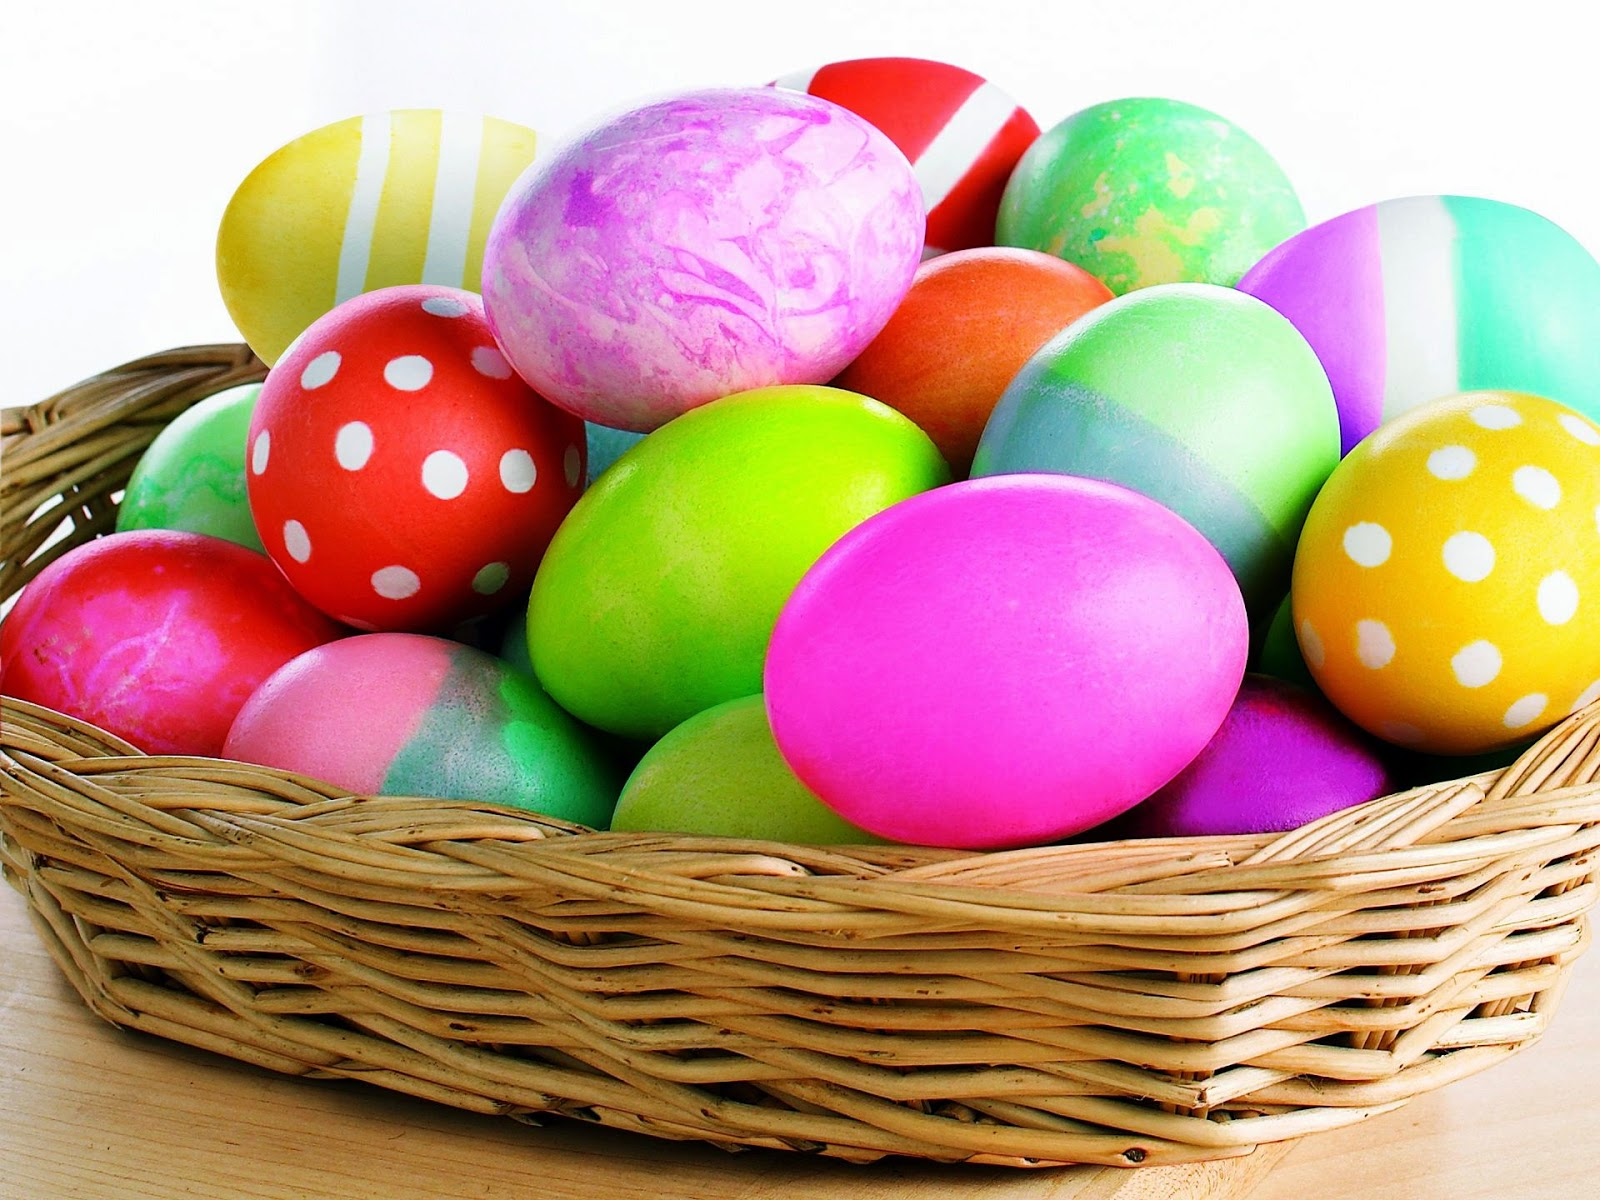 Colorful Easter egg pictures 2021